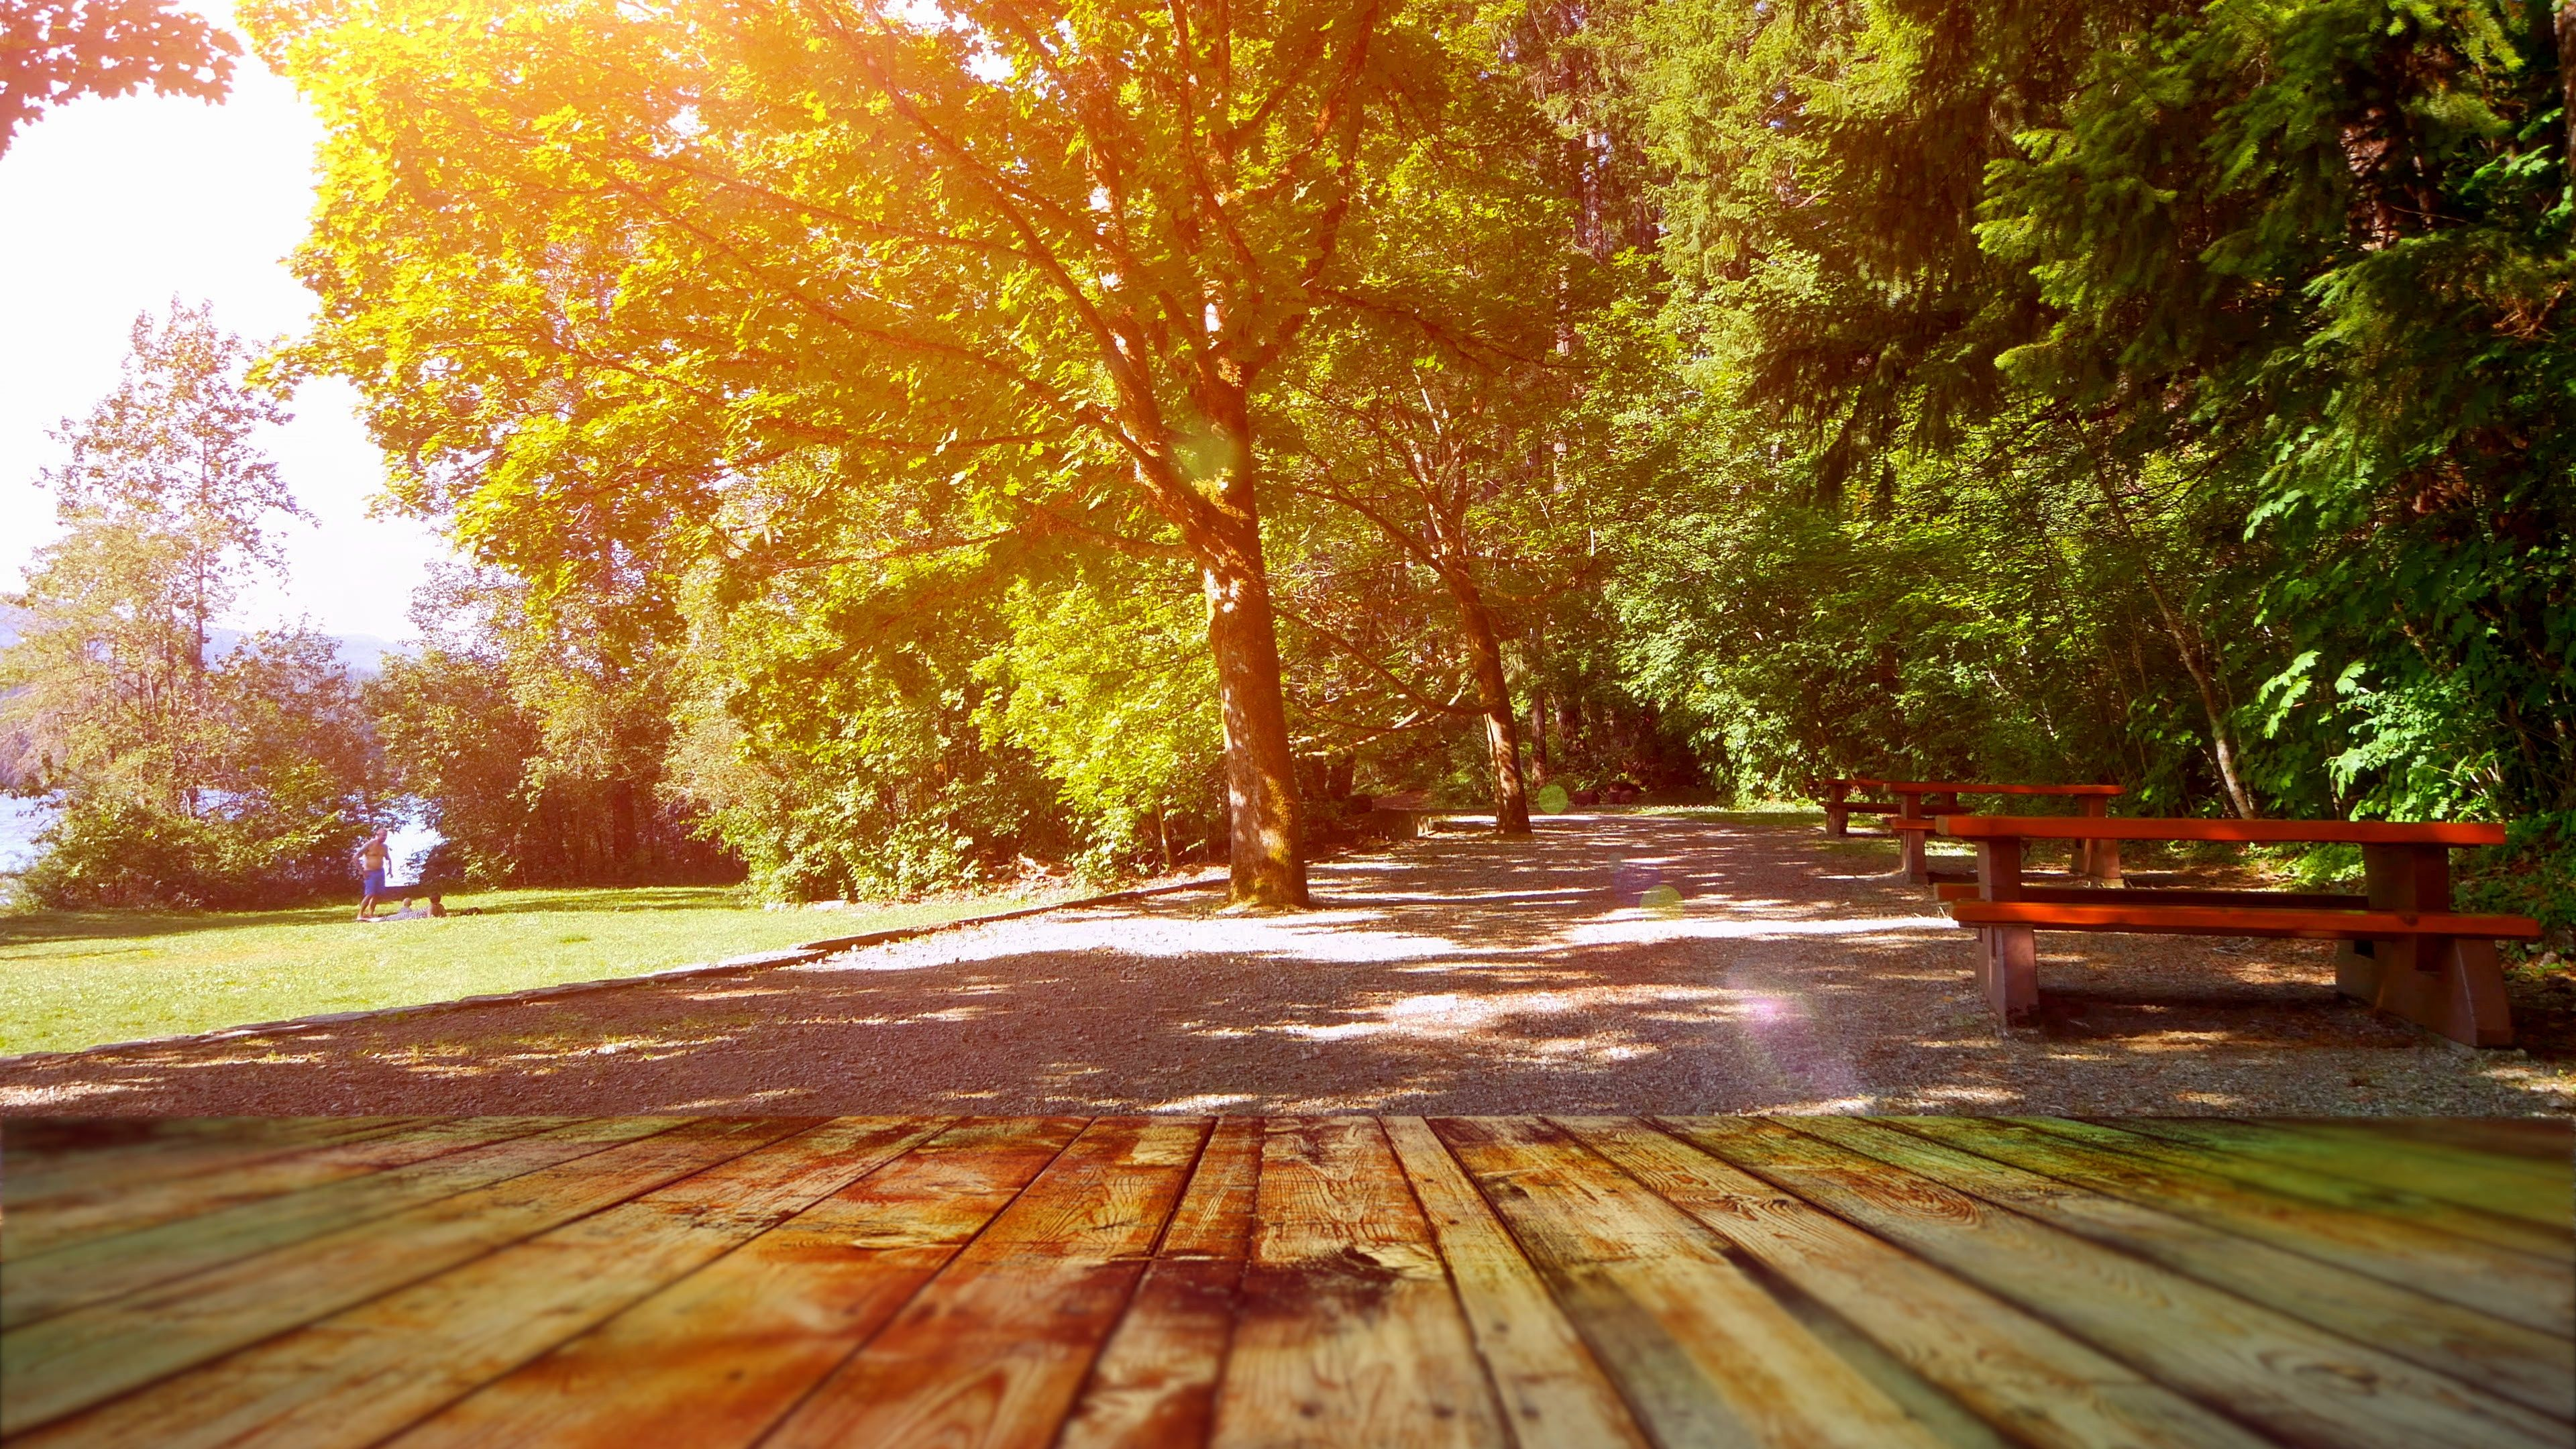 Park Picnic Table Nature Background, Outdoor Table Top Design, Nature Grass  Tree Stock Footage,#Nature#B… | Outdoor table tops, Nature backgrounds,  Table top design